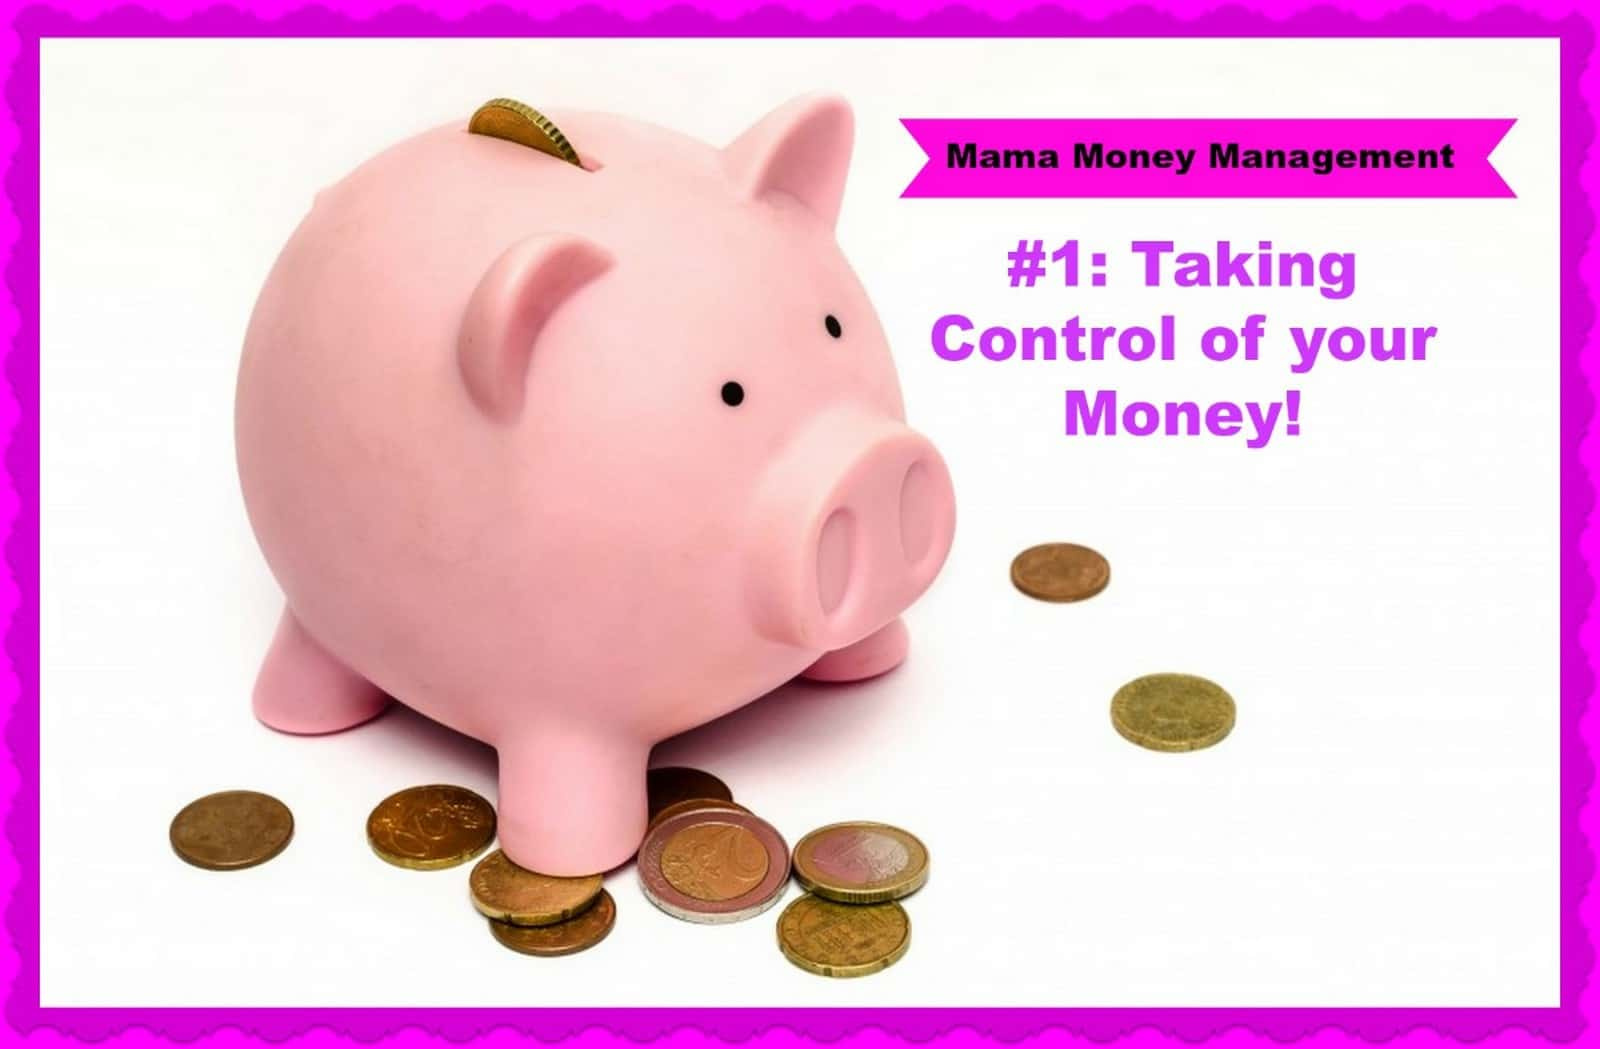 Taking Control of Your Money